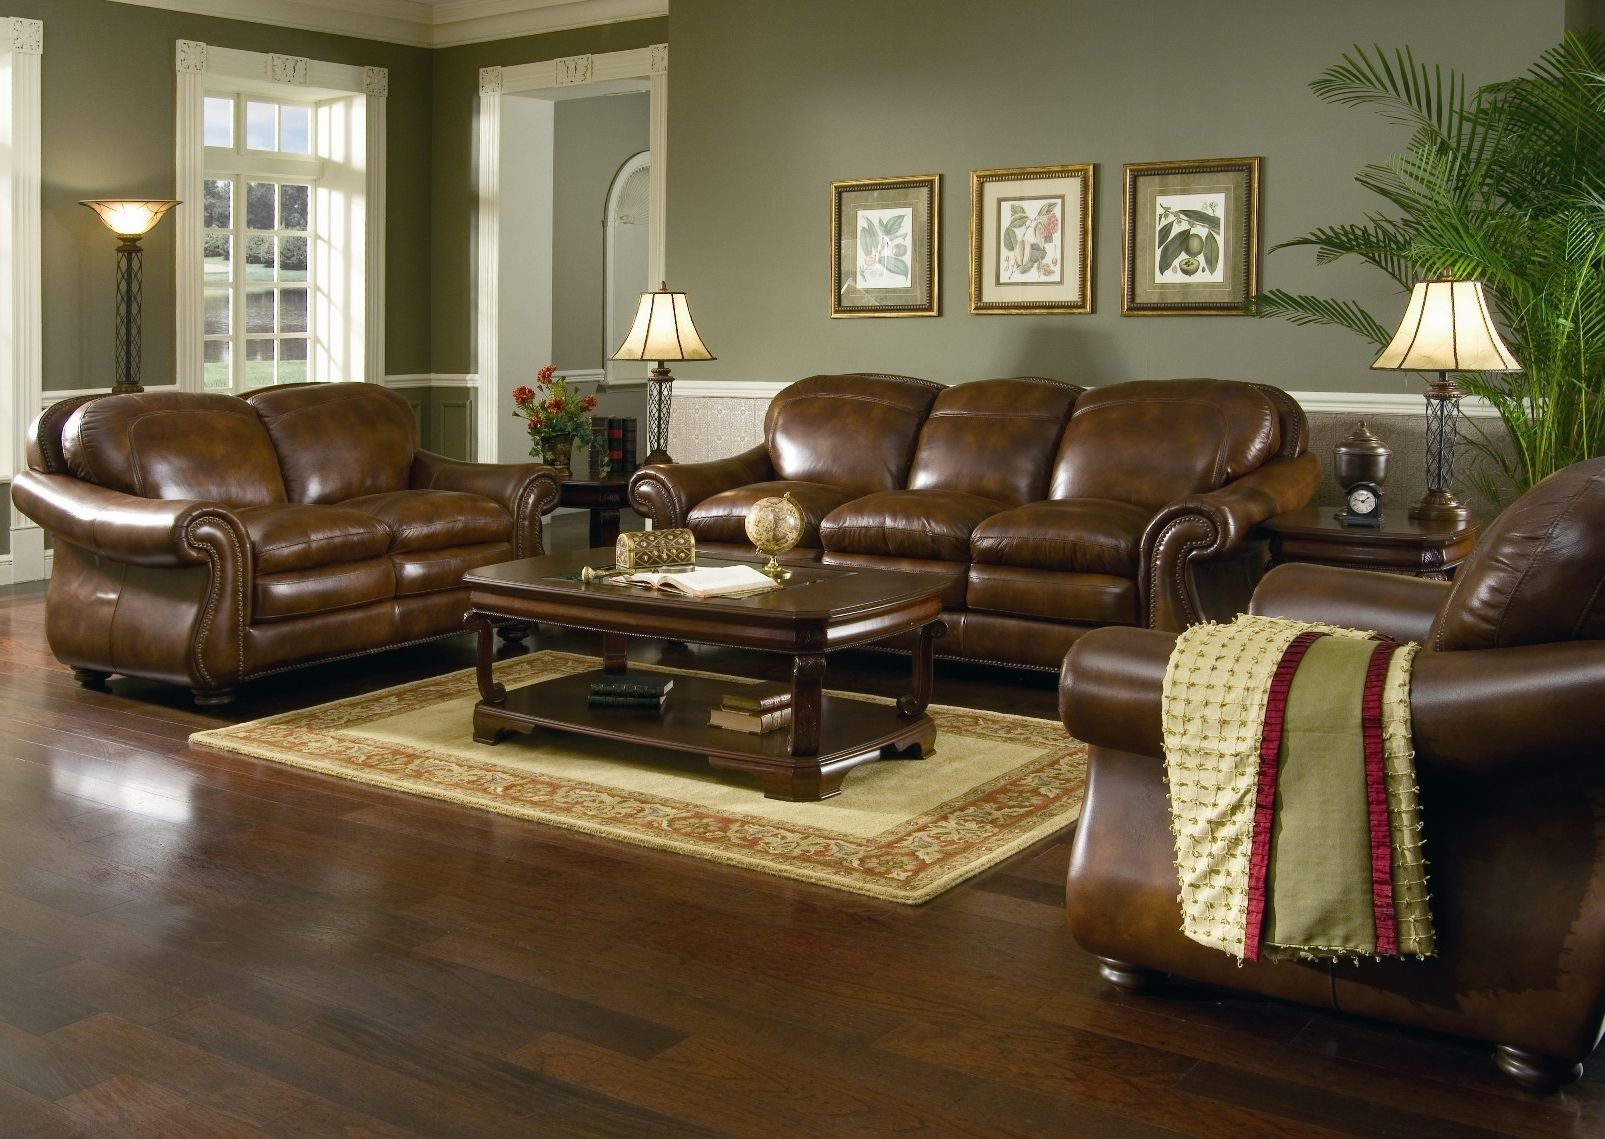 Brown leather living room furniture - 1000 Ideas About Brown Leather Sofa Bed On Pinterest Leather Couches Leather Sofas And Tan Leather Couches